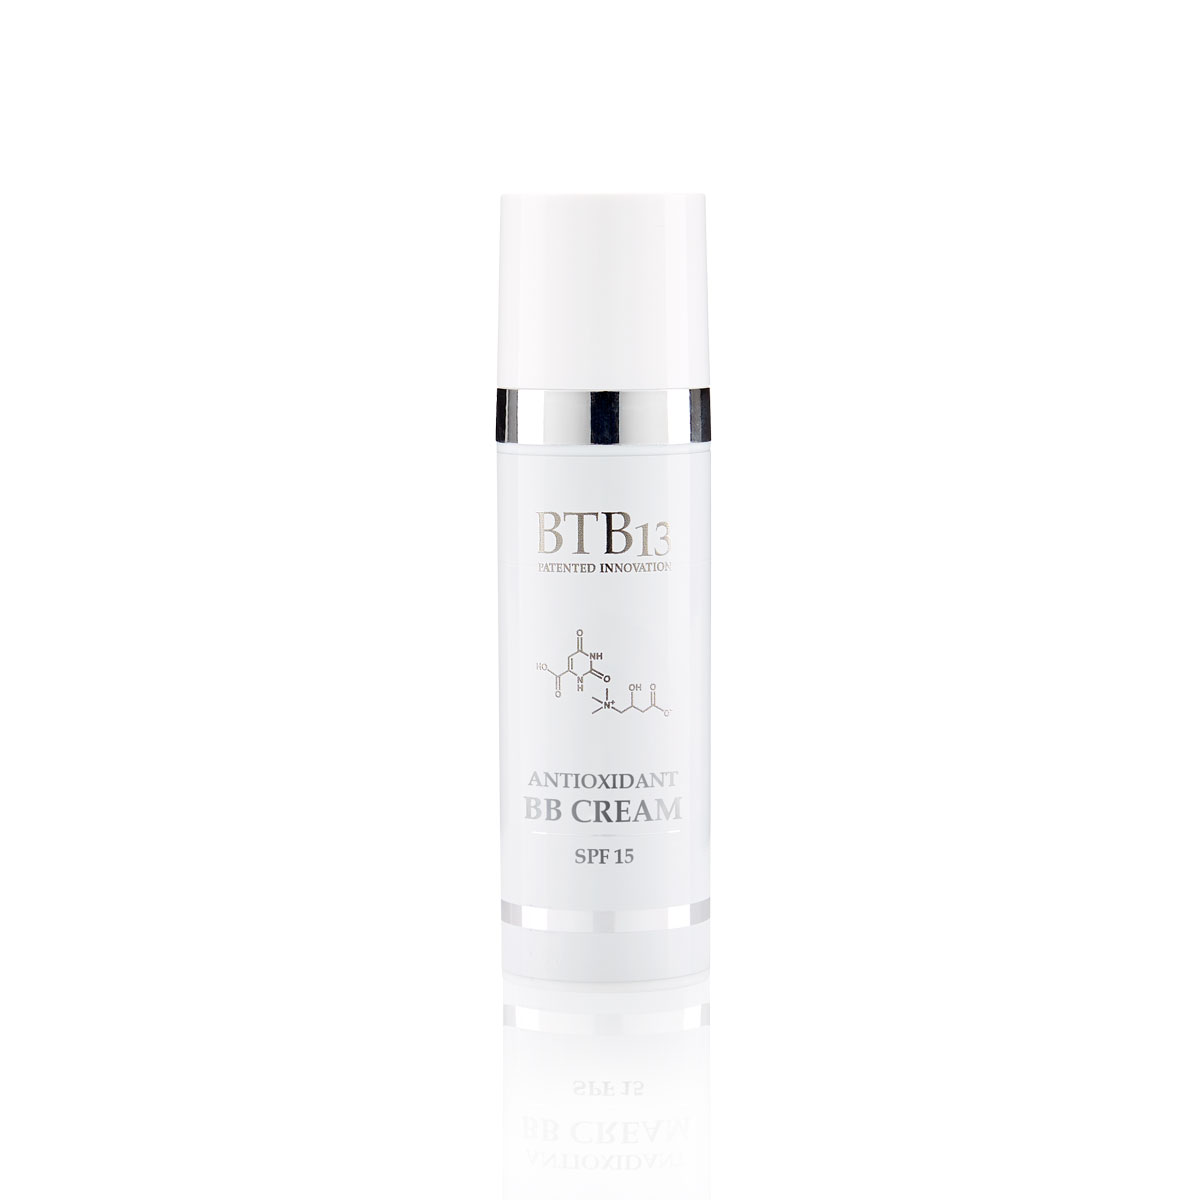 BTB13 Antioksidant BB Cream 30ml